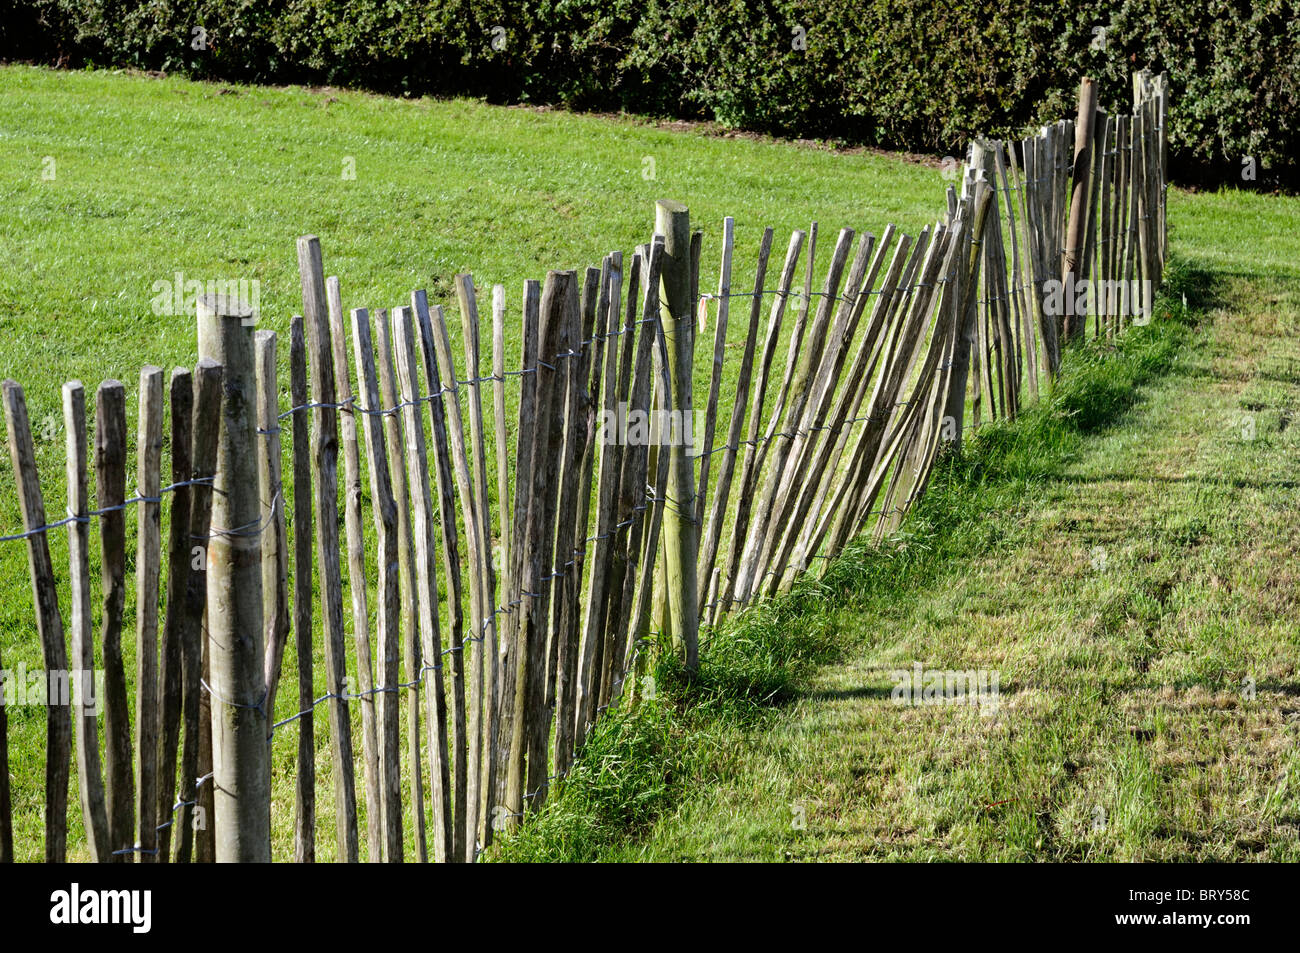 Wooden Picket Fence Rustic Traditional Look Looking Feel